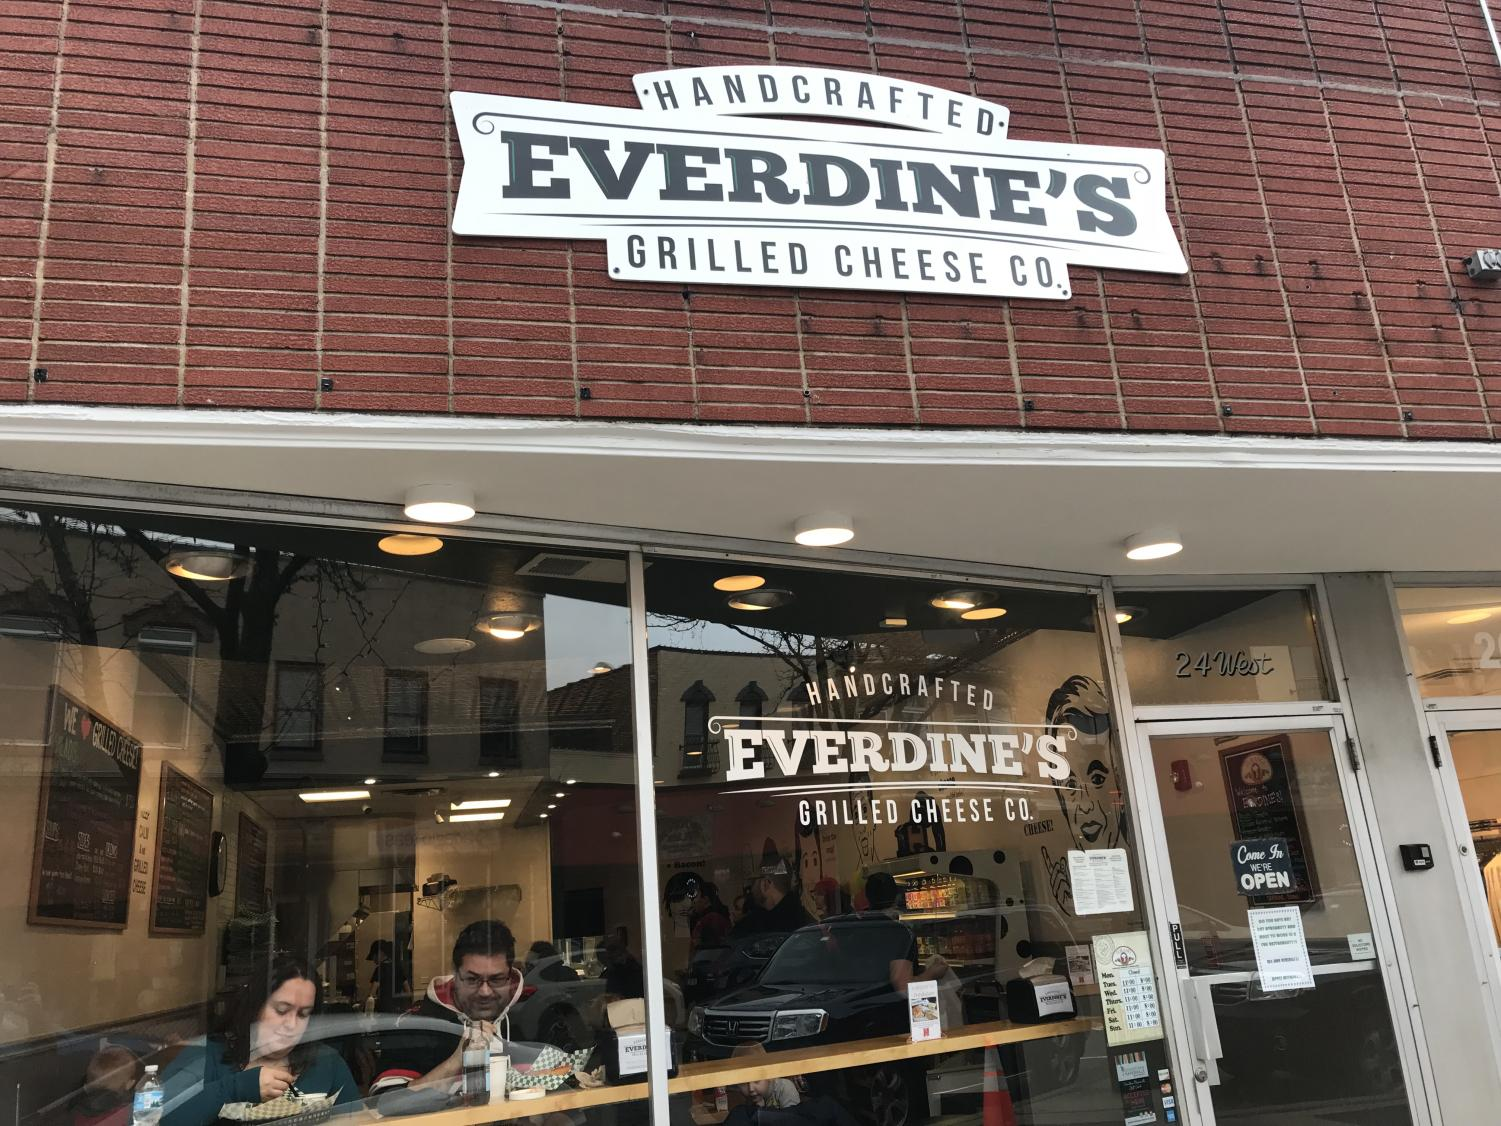 Located in downtown Naperville, Everdine's Grilled Cheese Co., while tasty, doesn't compare to Cheesie's in downtown LaGrange.